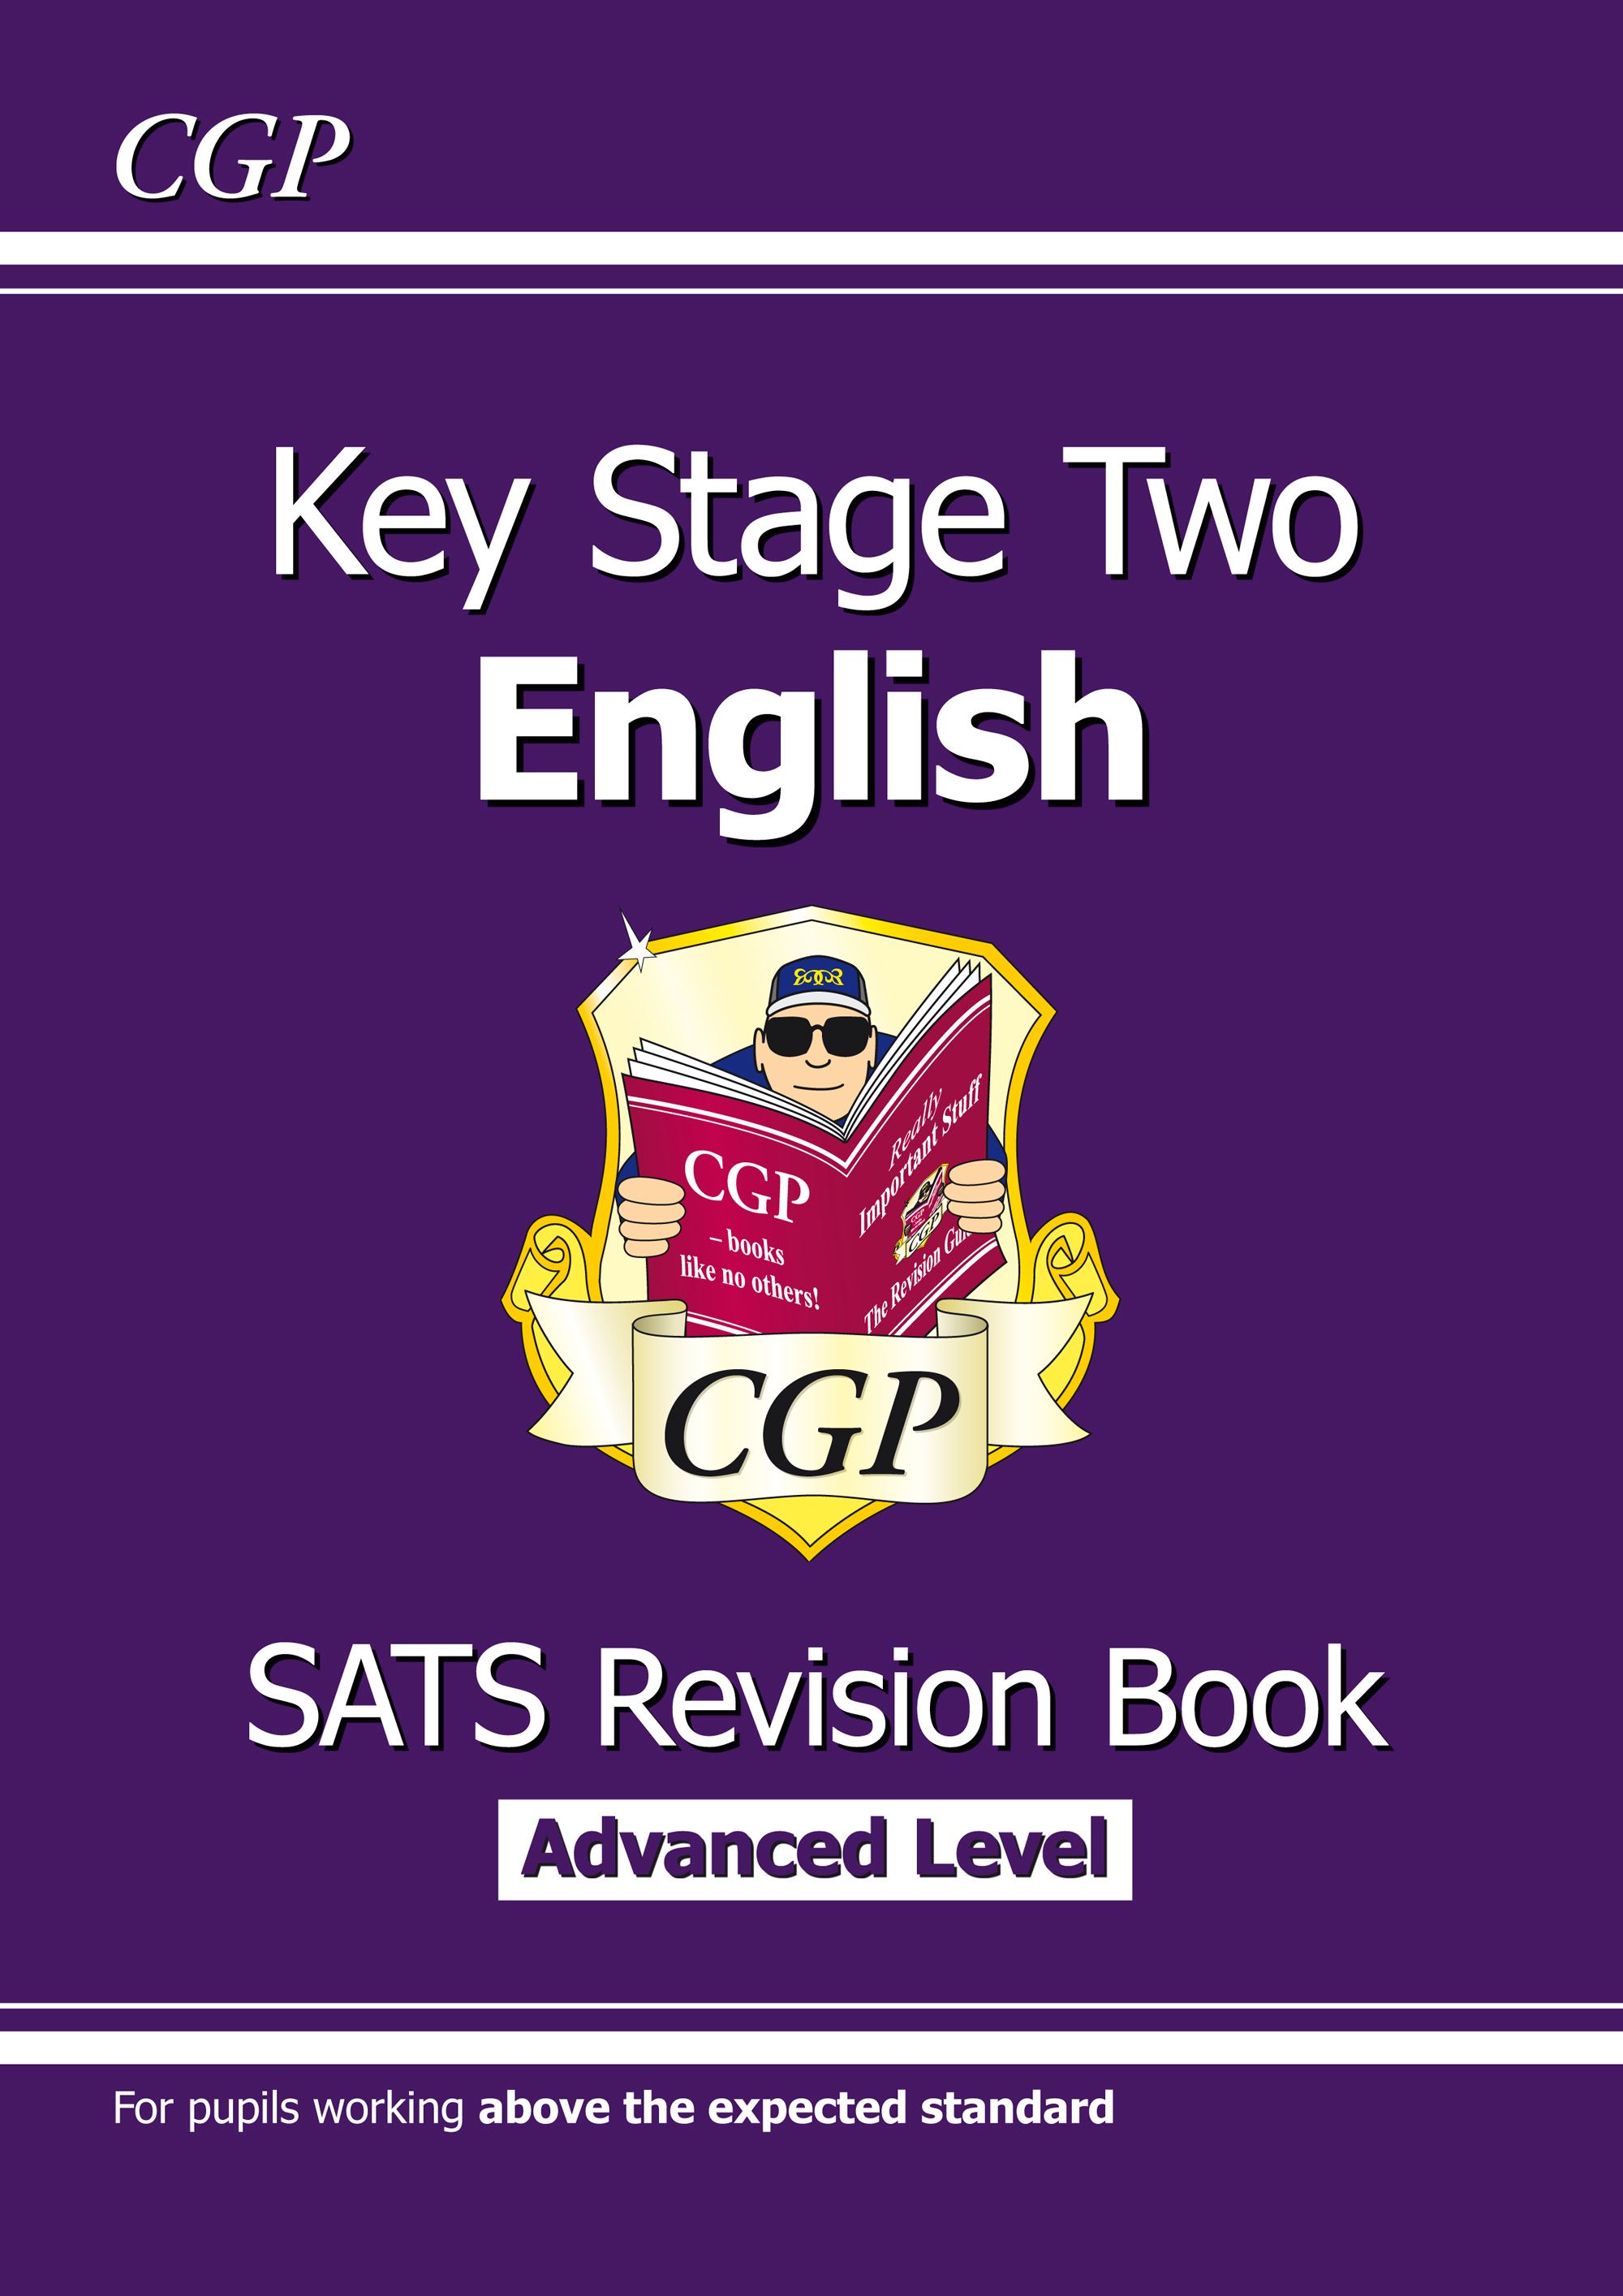 E6HR22 - KS2 English Targeted SATS Revision Book - Advanced Level (for the 2019 tests)